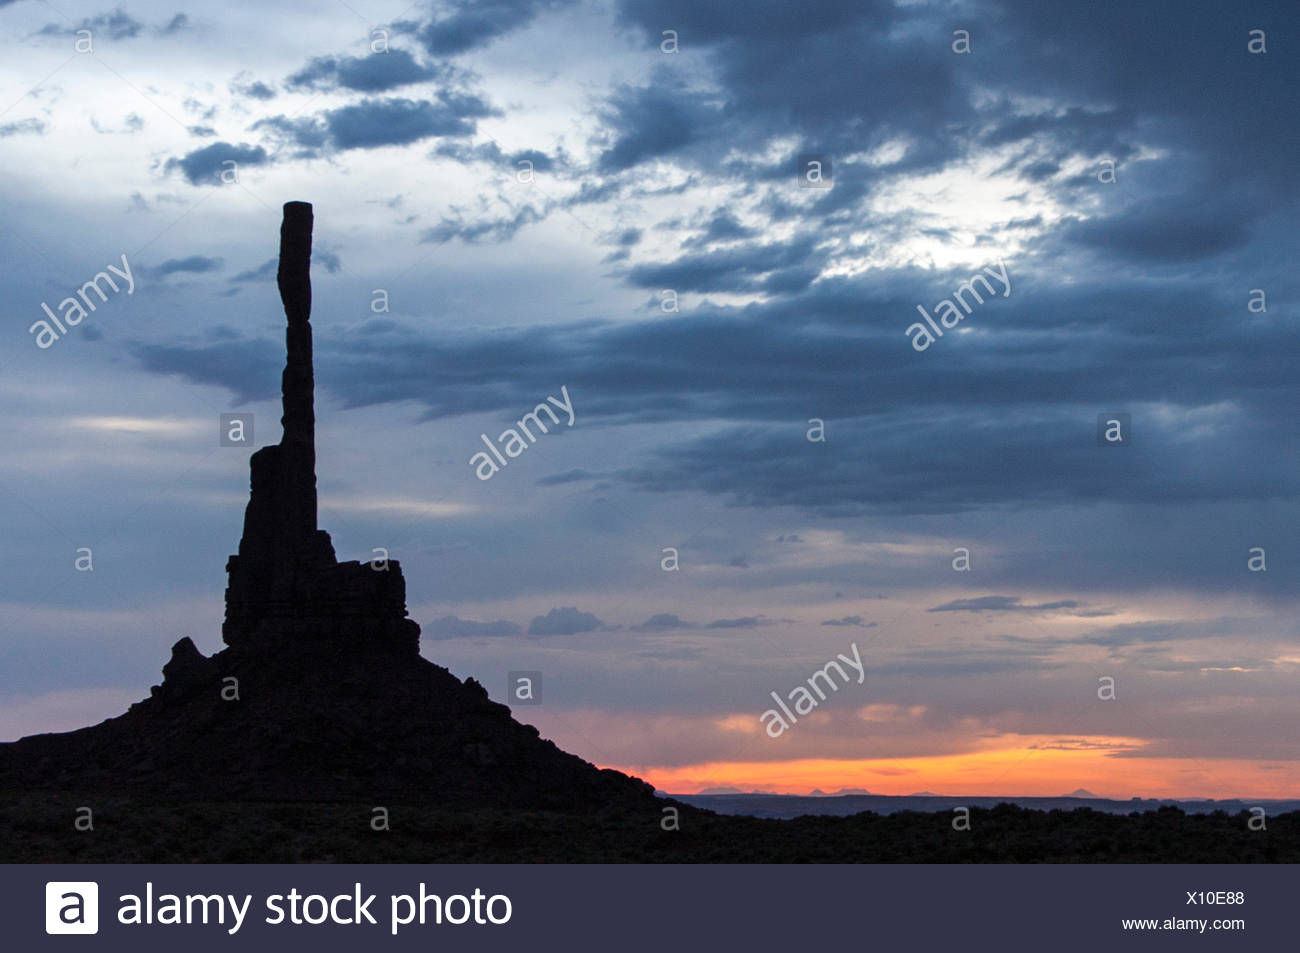 Silhouette of built structure at sunset - Stock Image